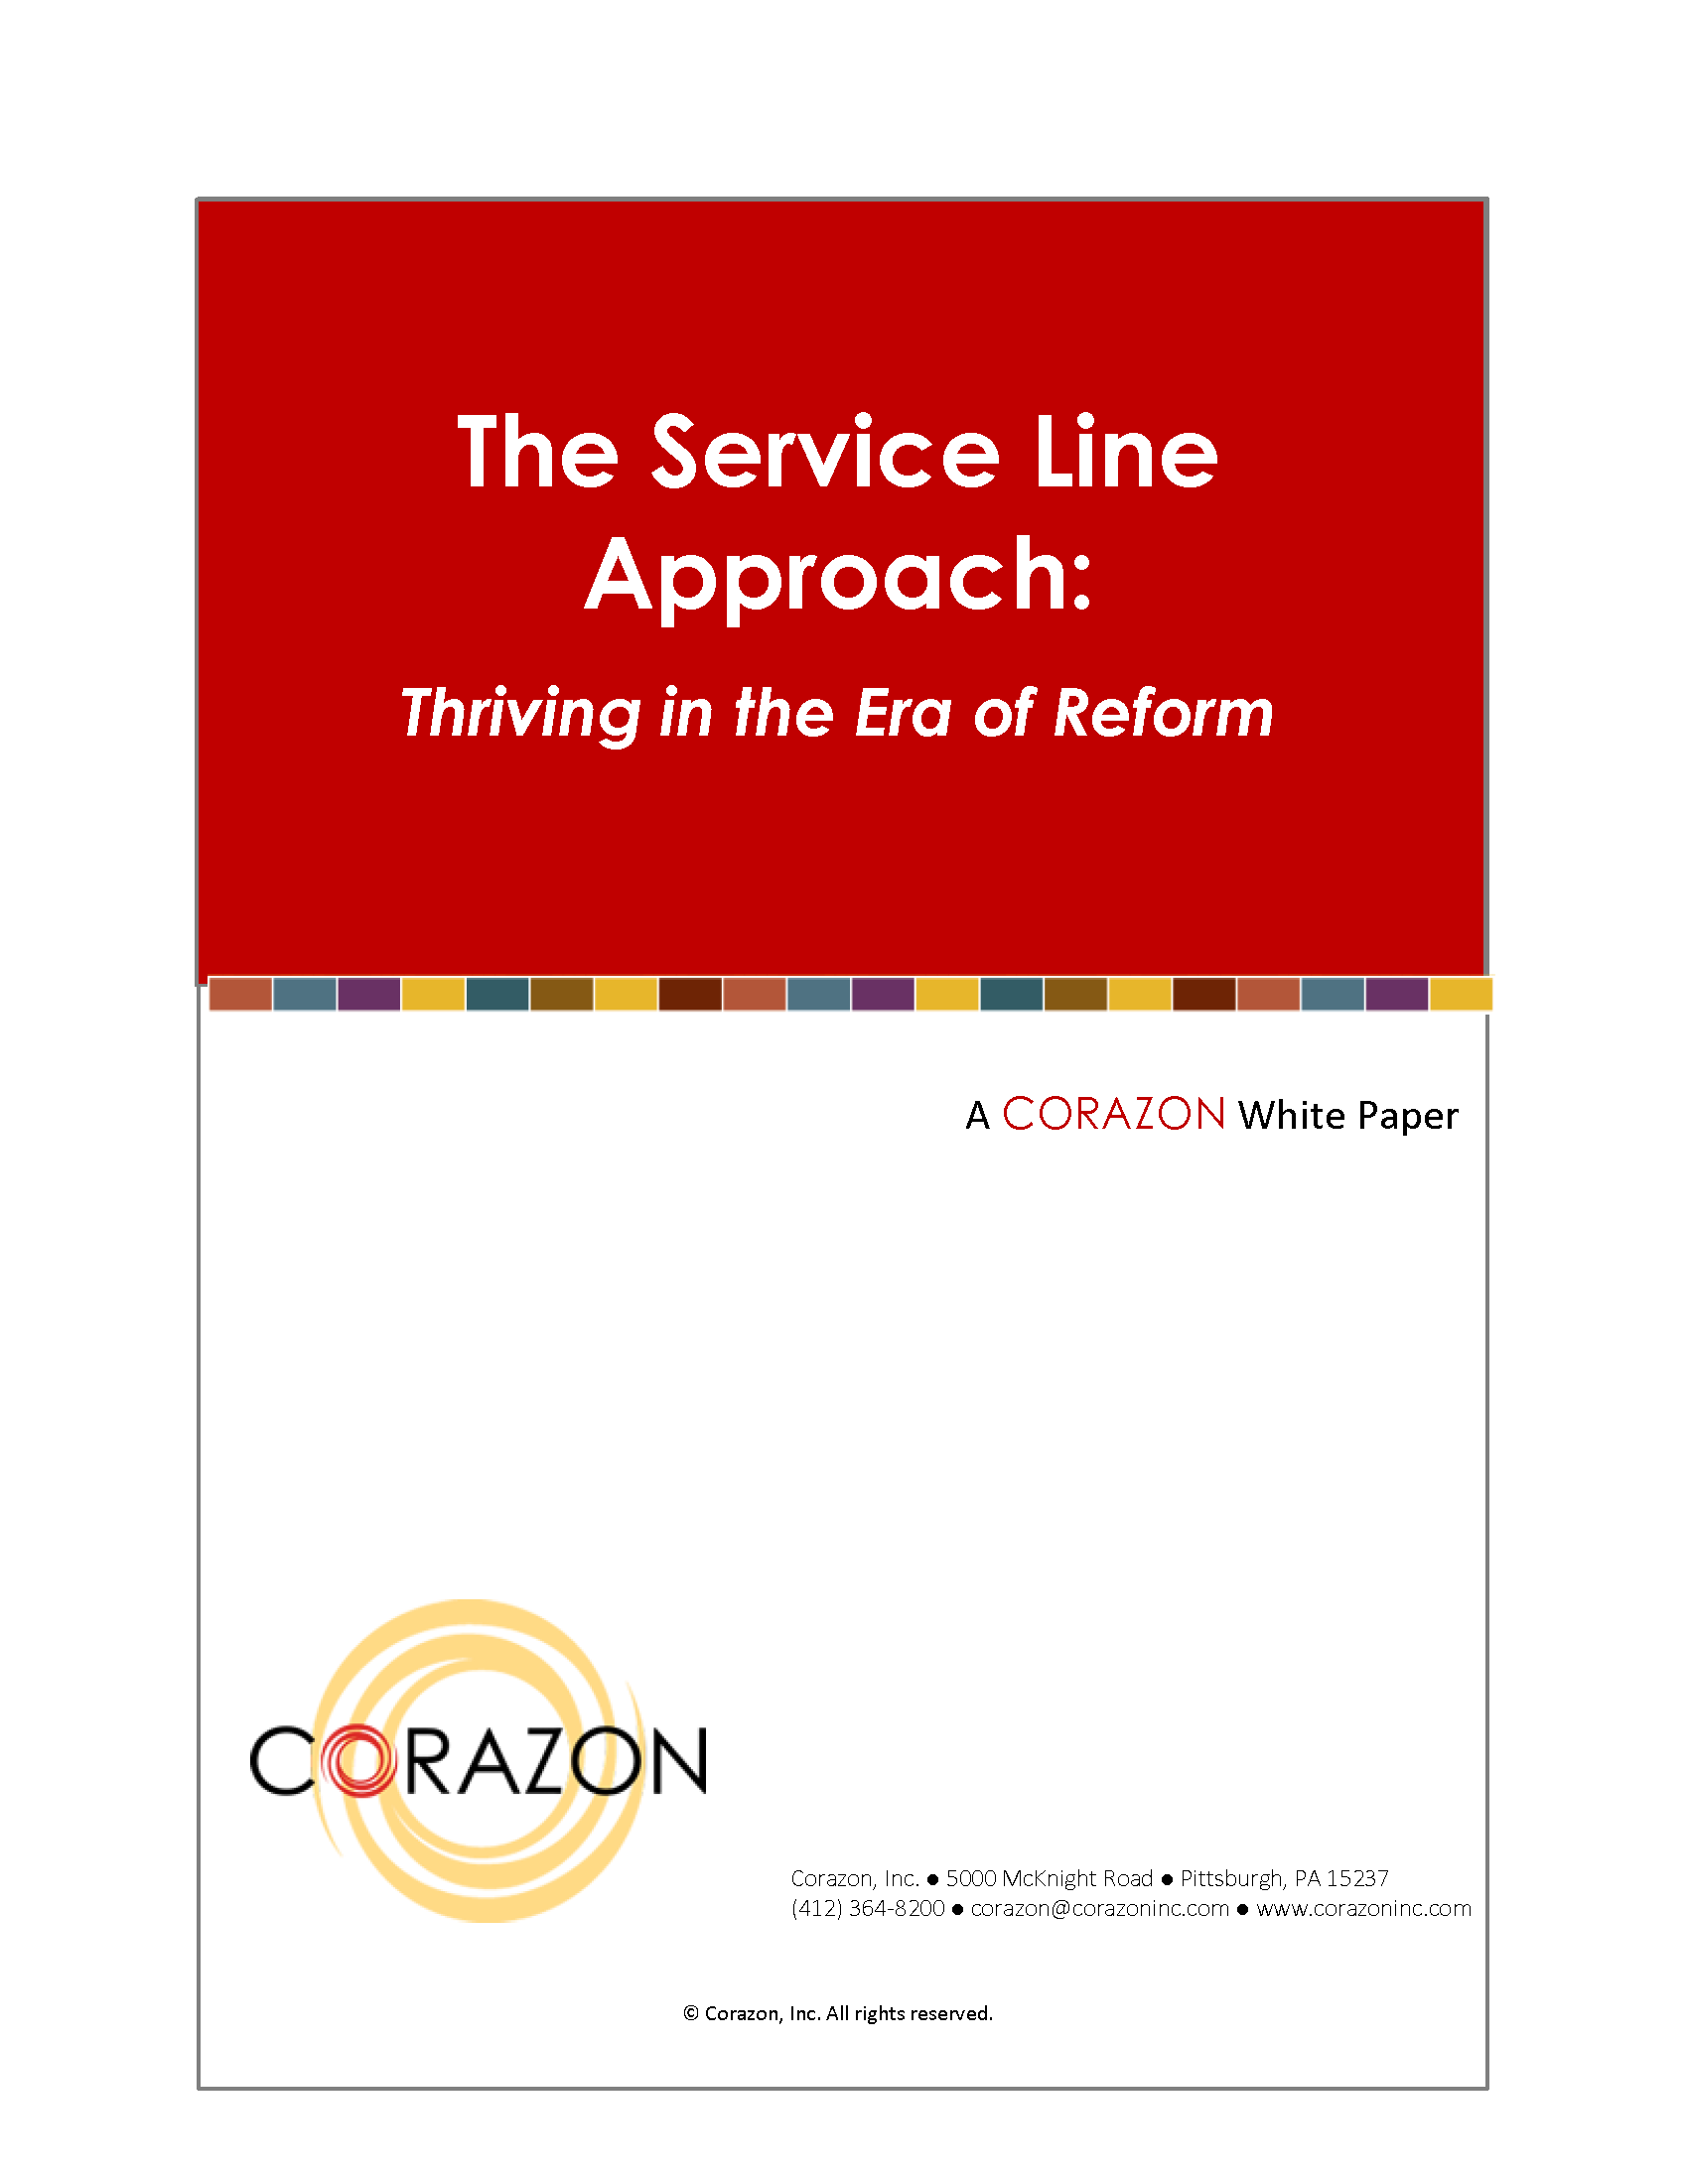 The Service Line Approach: Thriving in the Era of Reform 00057